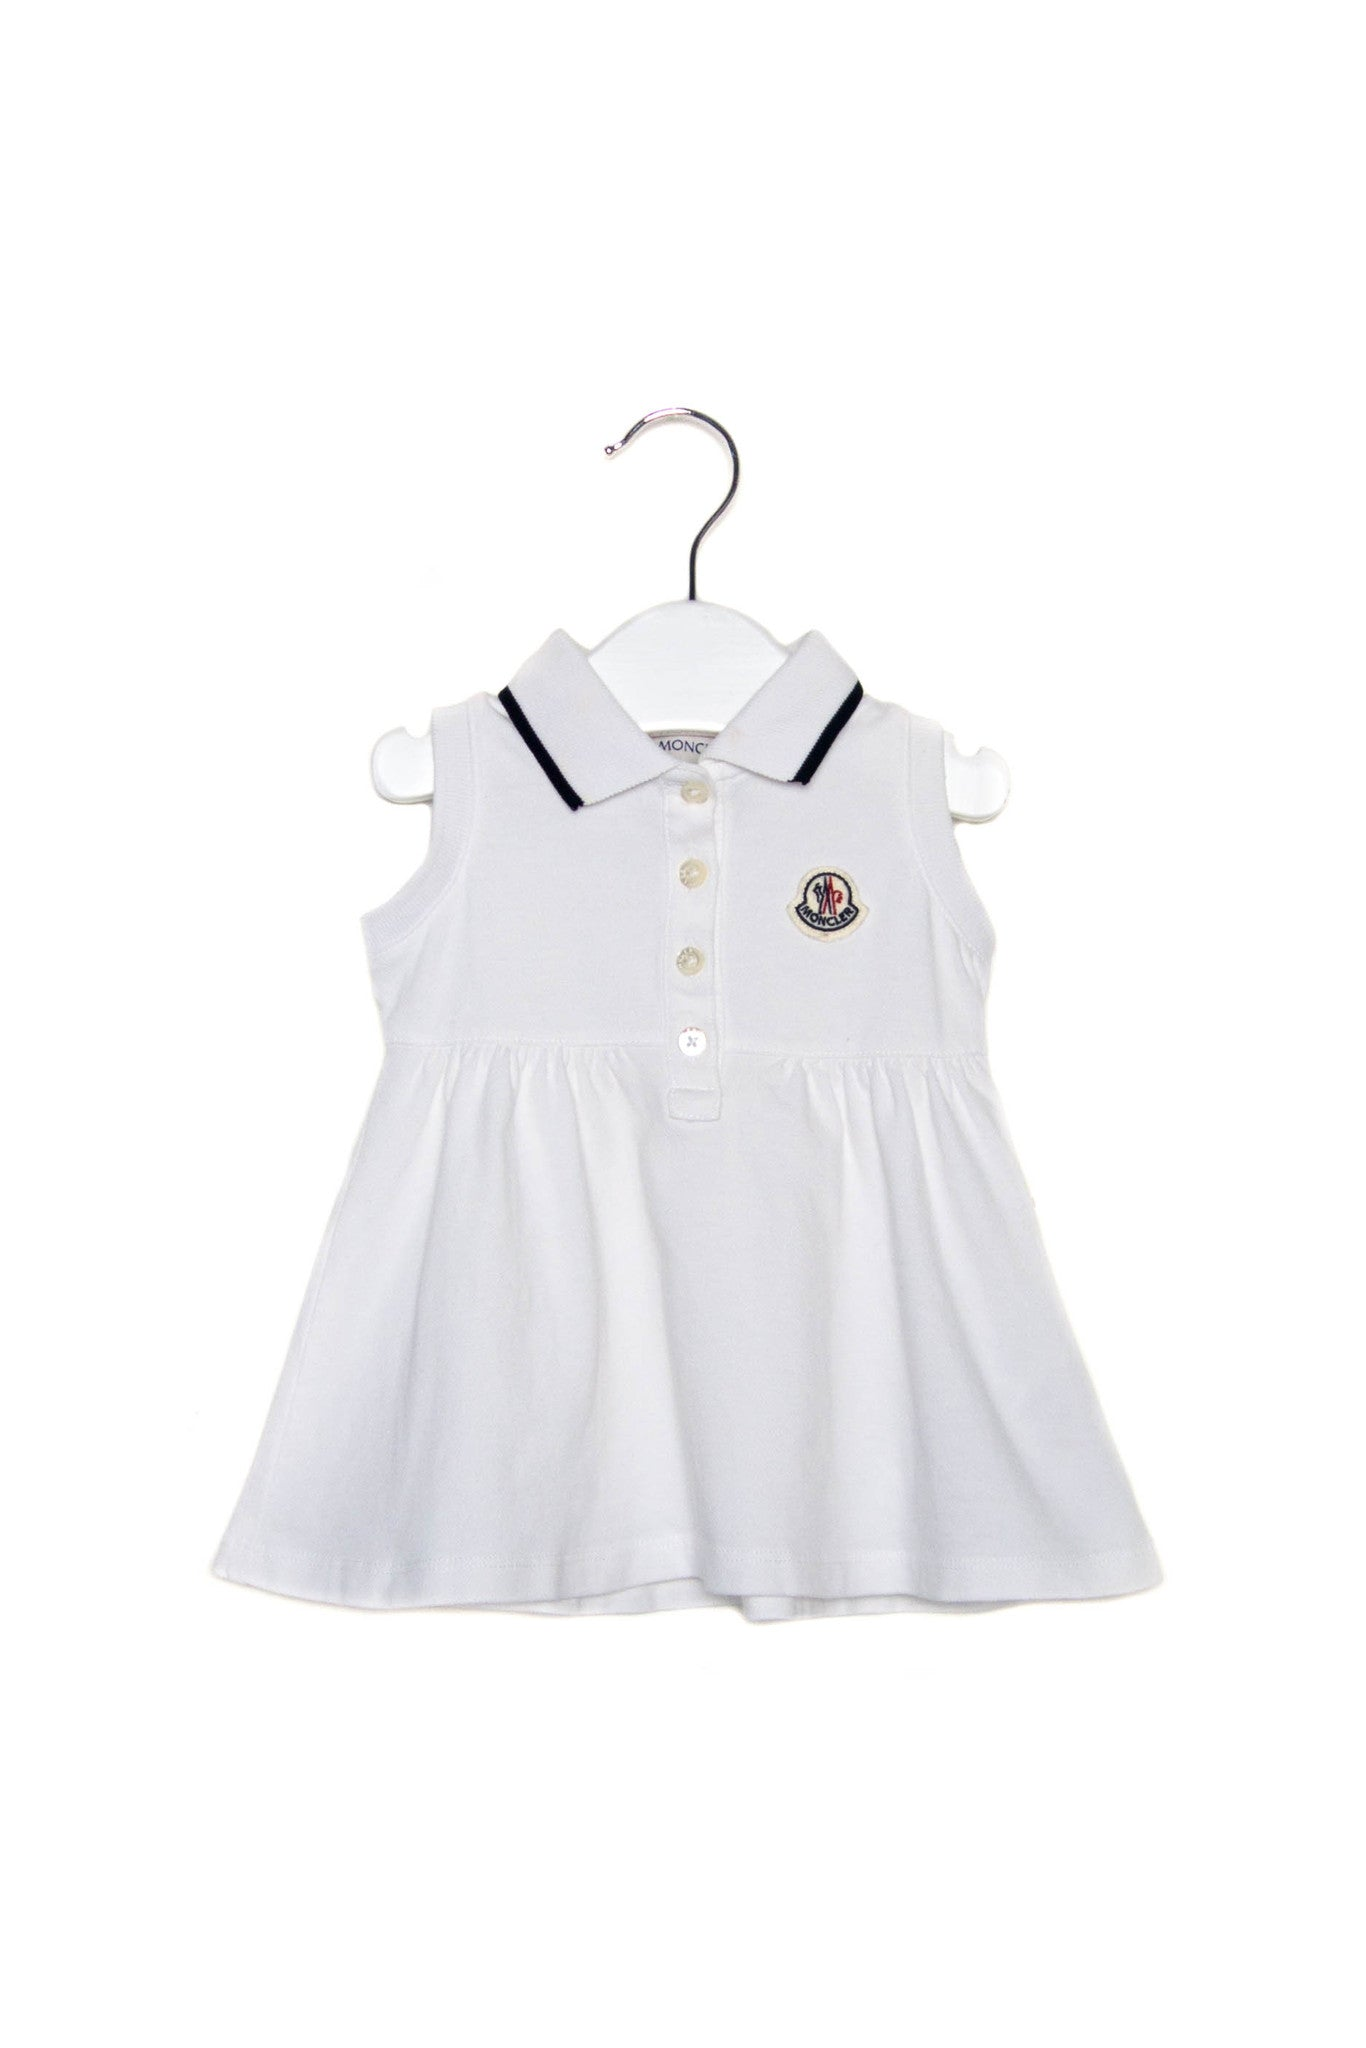 10002250 Moncler Baby~Dress and Bloomer 6M at Retykle